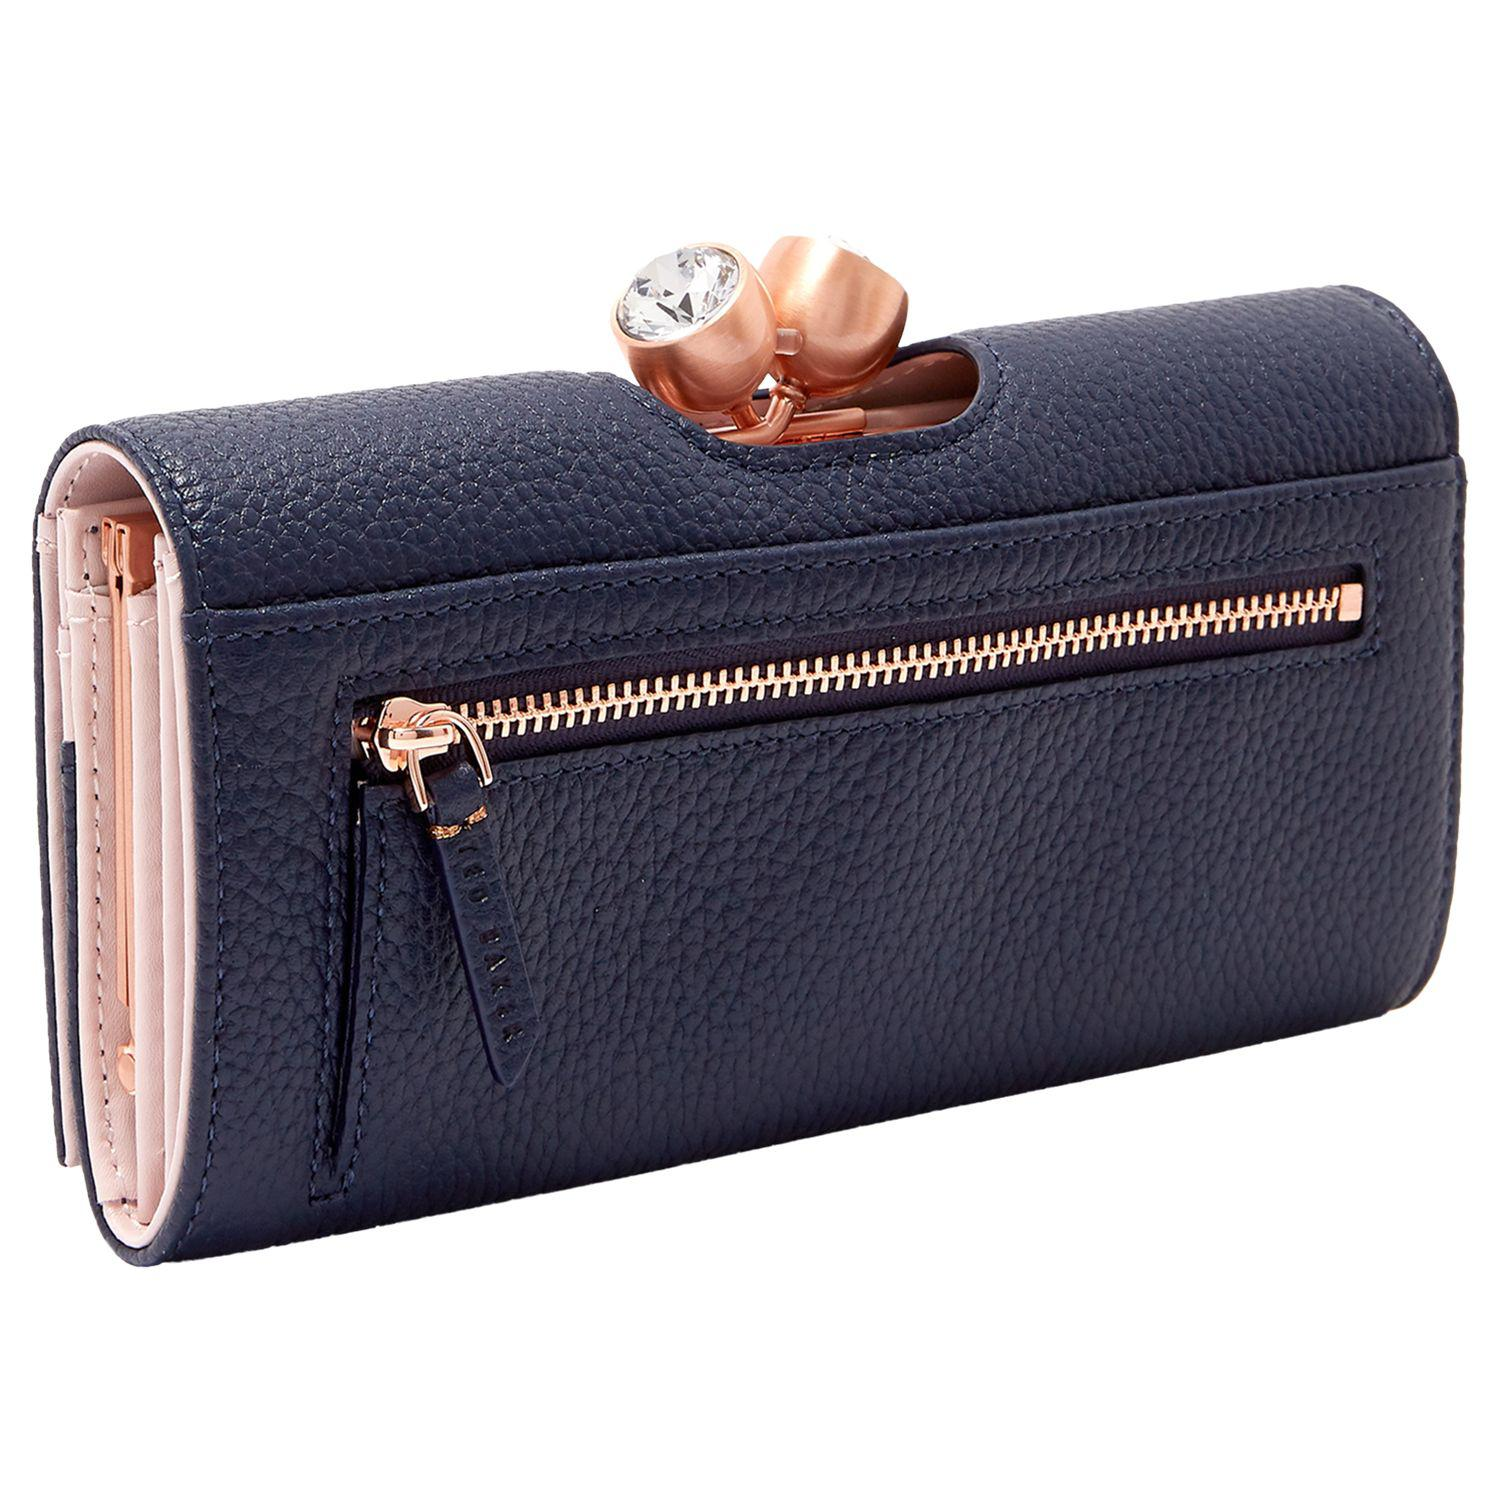 cb4daed22 Blue Ted Baker Purse John Lewis - Best Purse Image Ccdbb.Org